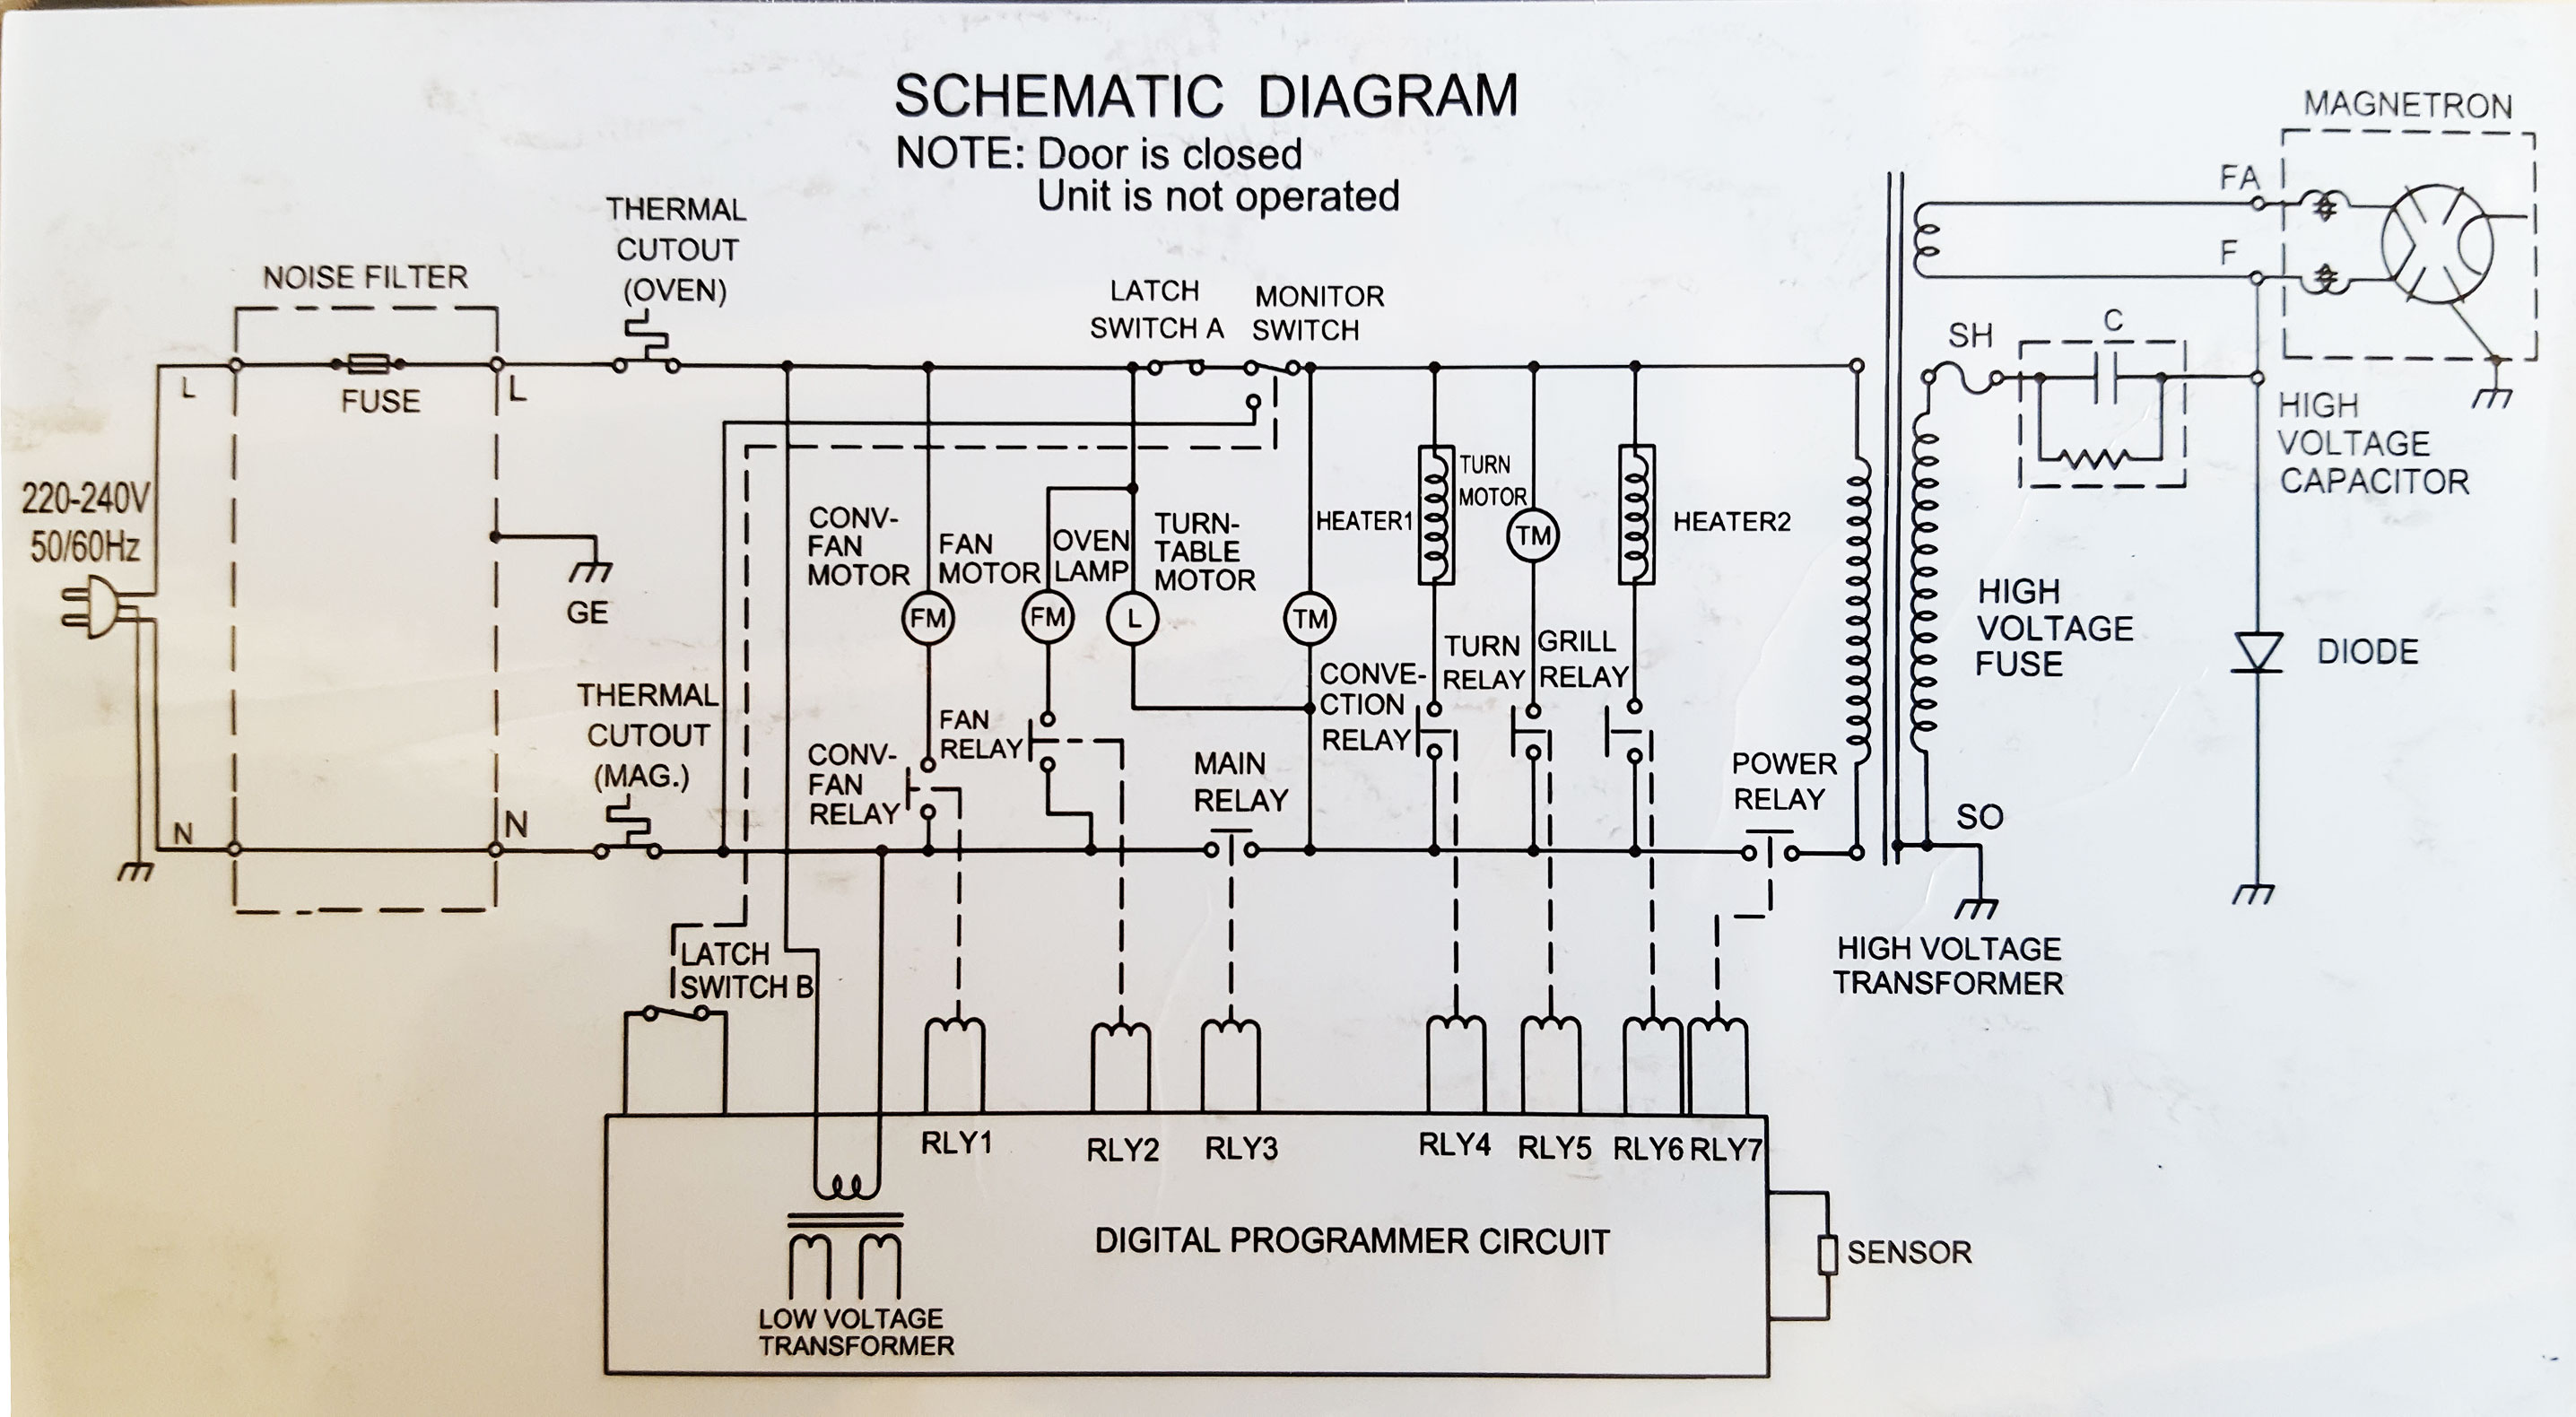 Wiring Diagram Of Samsung Microwave Oven Electronics Repair ... on